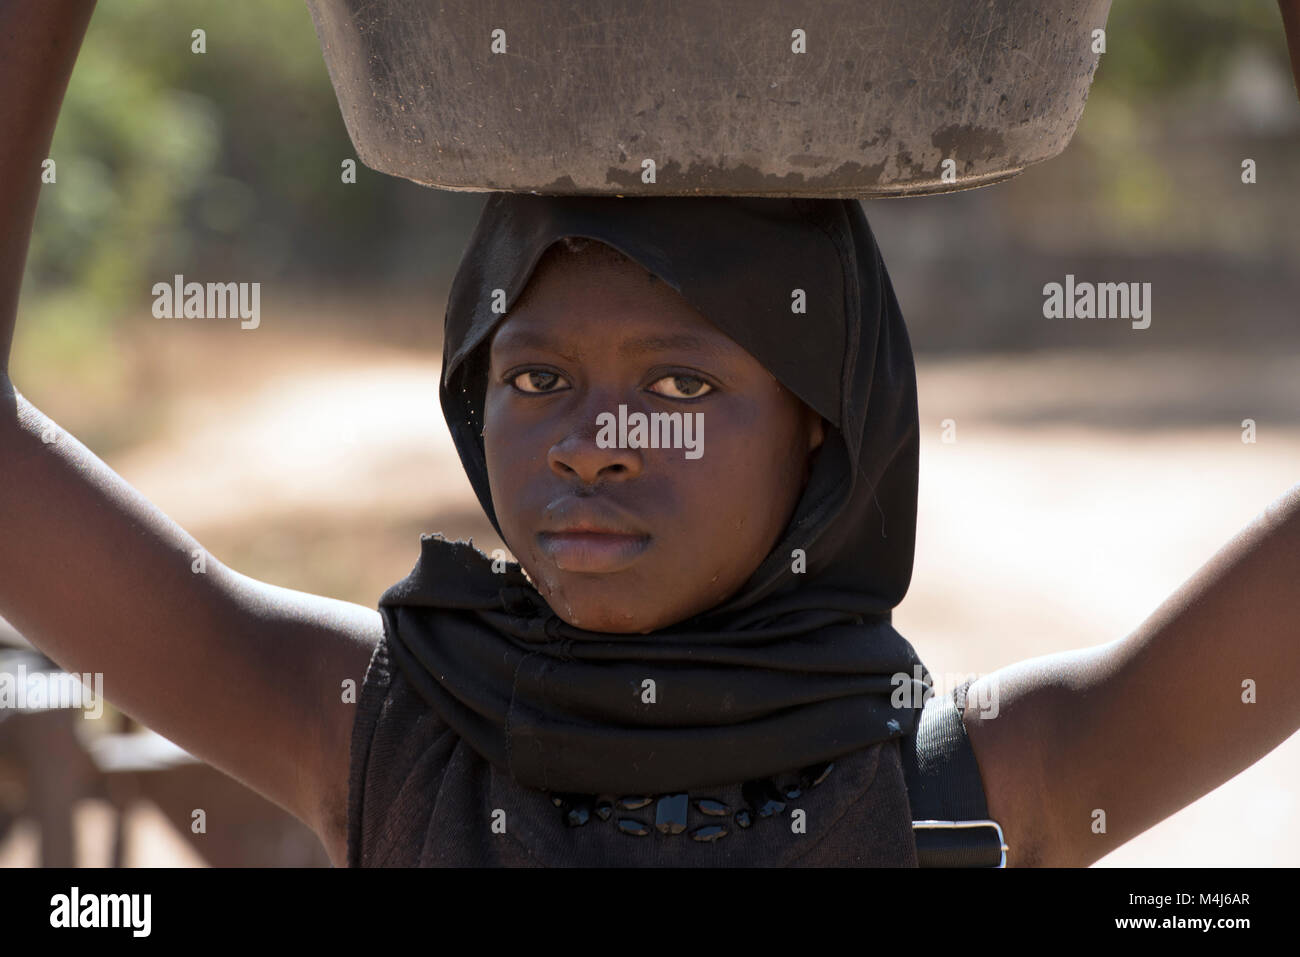 A young Mandinka (Mandingo) girl carrying a pot on her head in her village in The Gambia, West Africa. - Stock Image